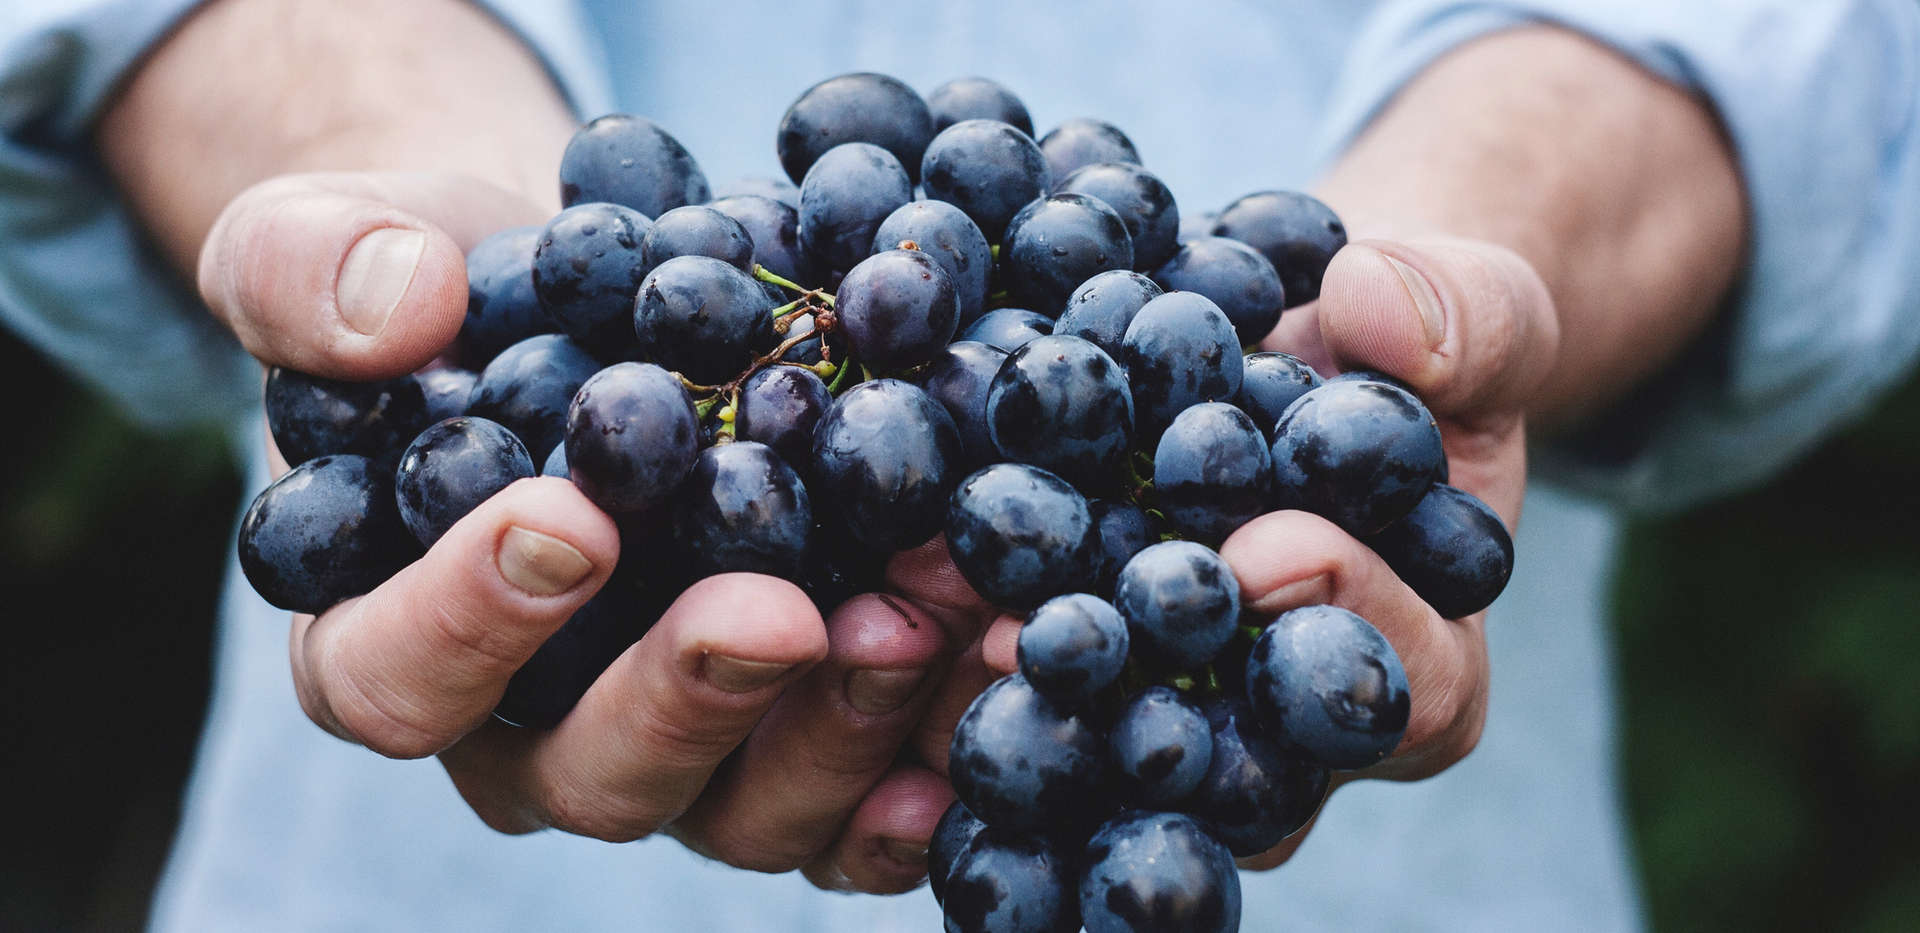 About 700 grapes go into one bottle of wine.